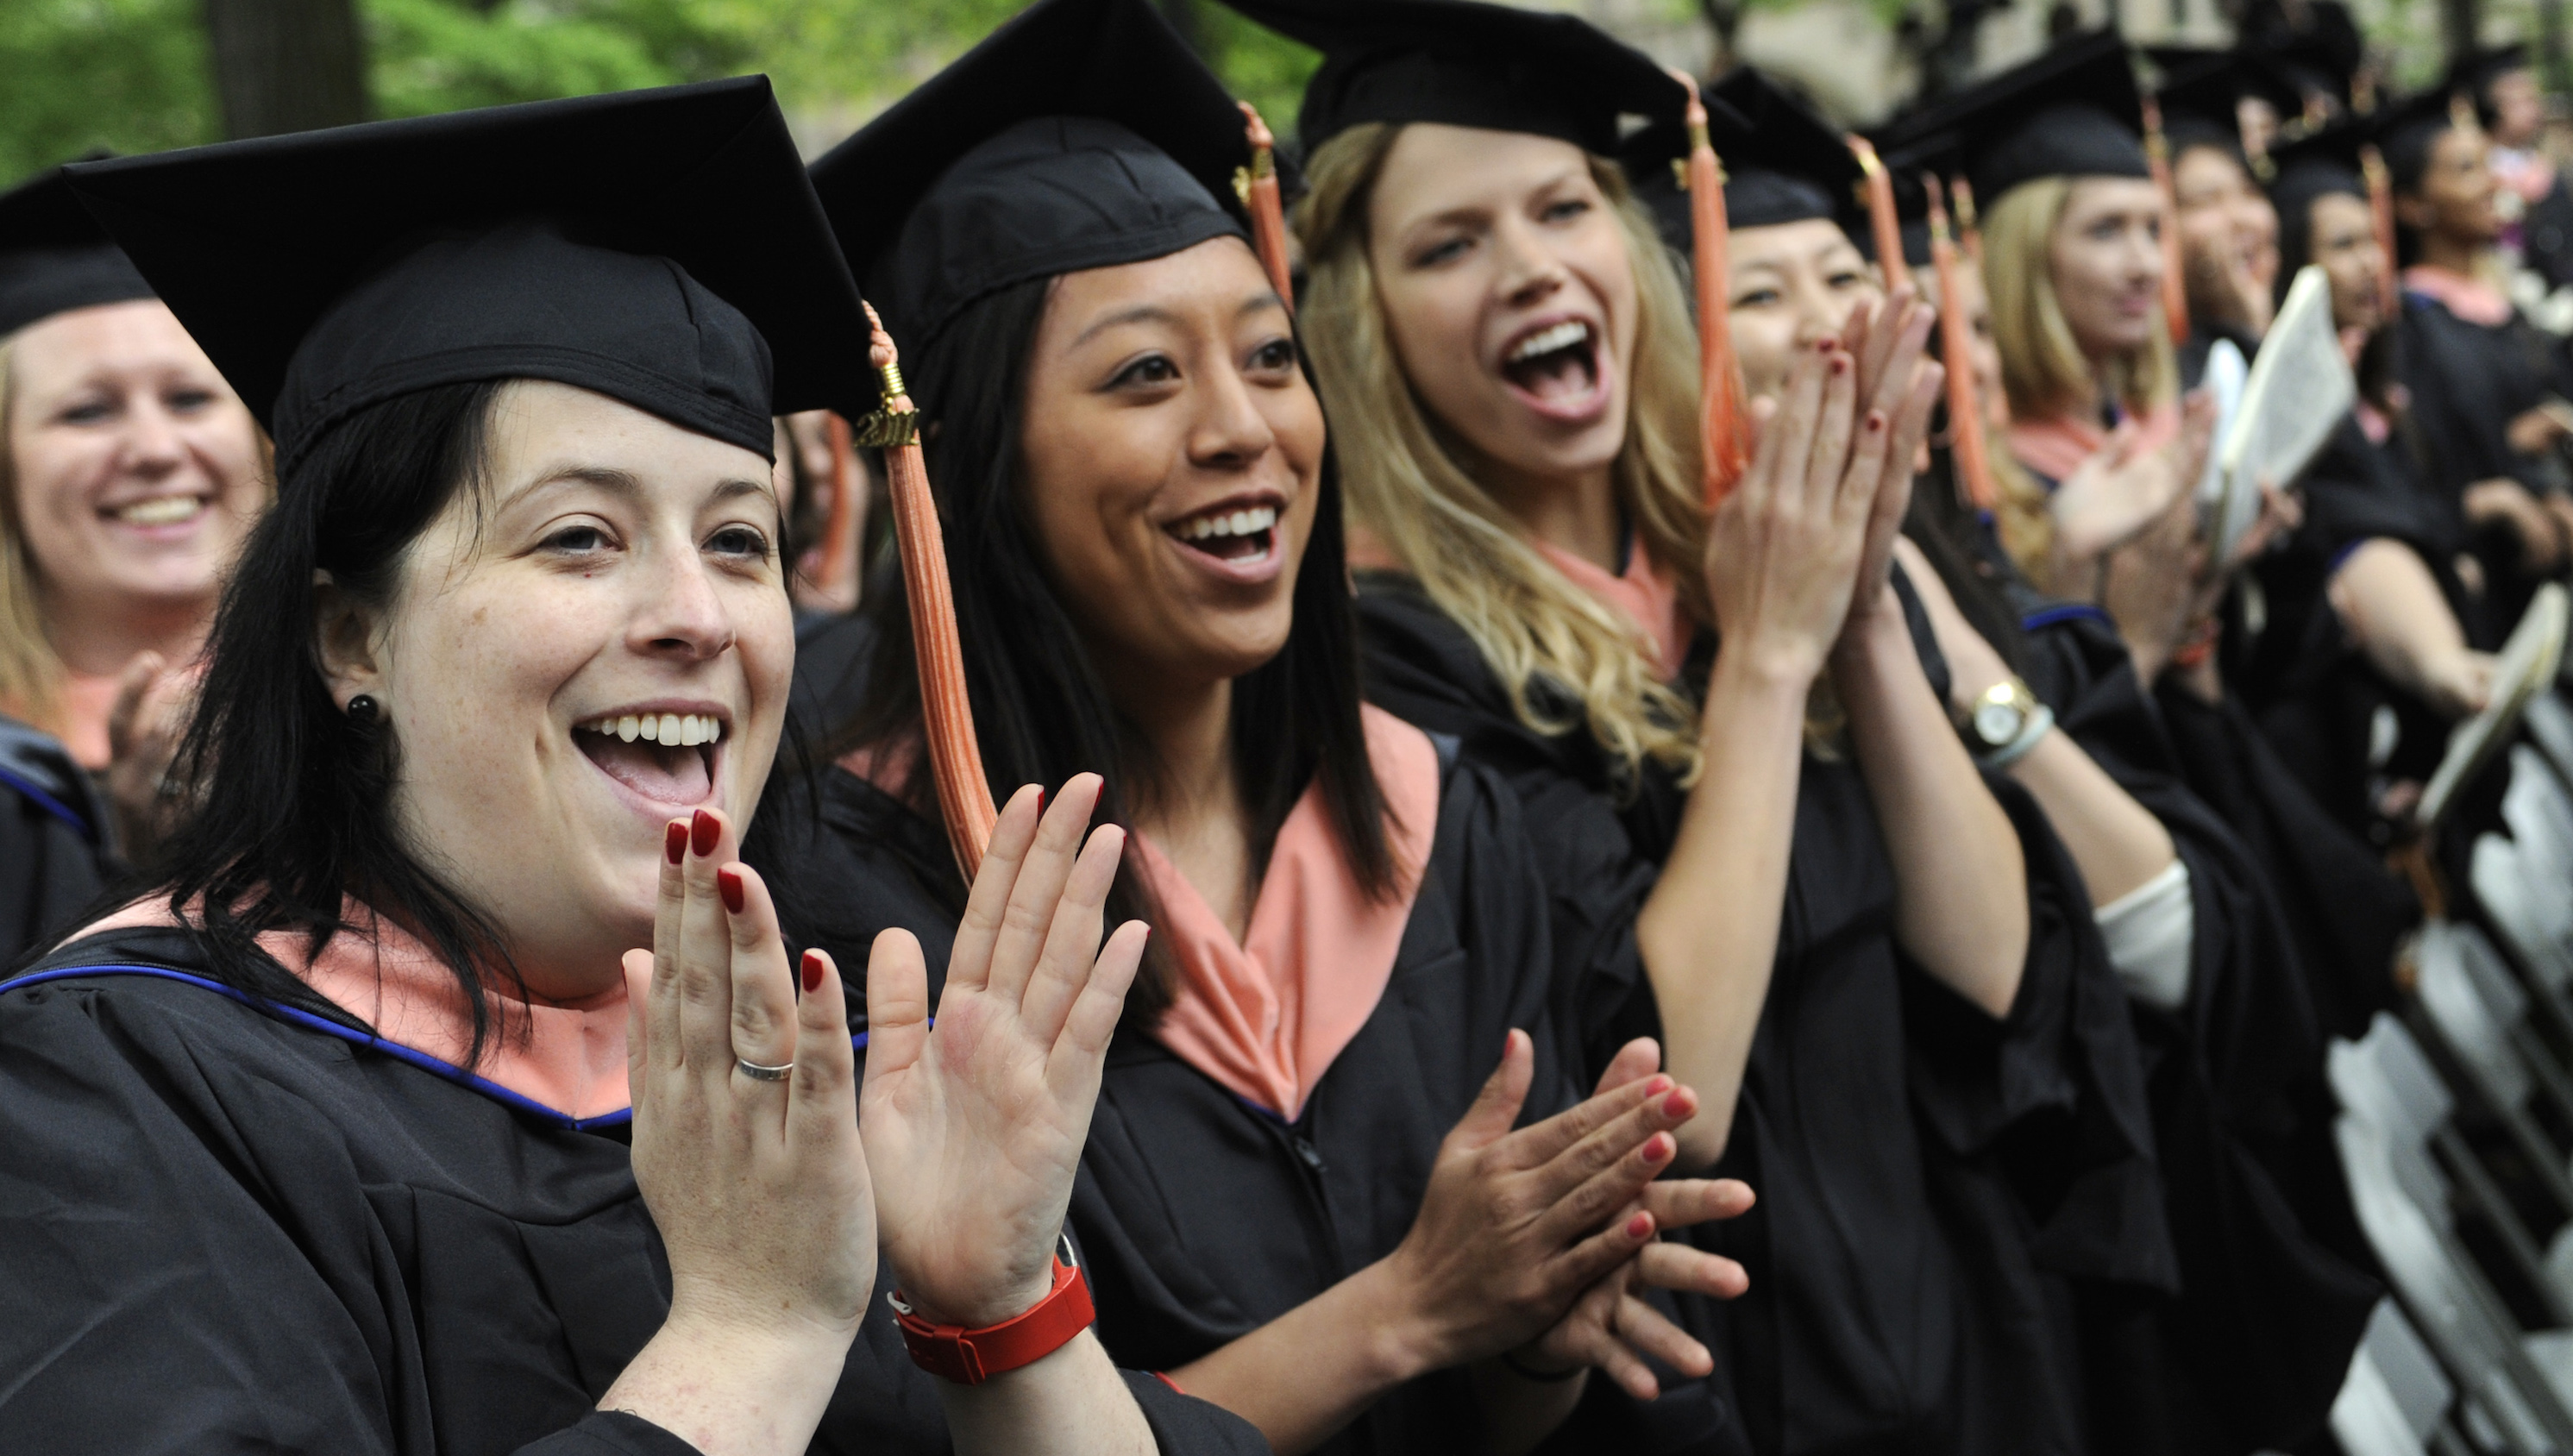 Public Health graduates Megan Leahy of Atlanta, left, Eling Tsai of Ormond Beach, Fla., and Dana Barnes of Omaha, Neb., right, celebrate during commencement exercises at Yale University in New Haven, Conn., Monday, May 23, 2011.